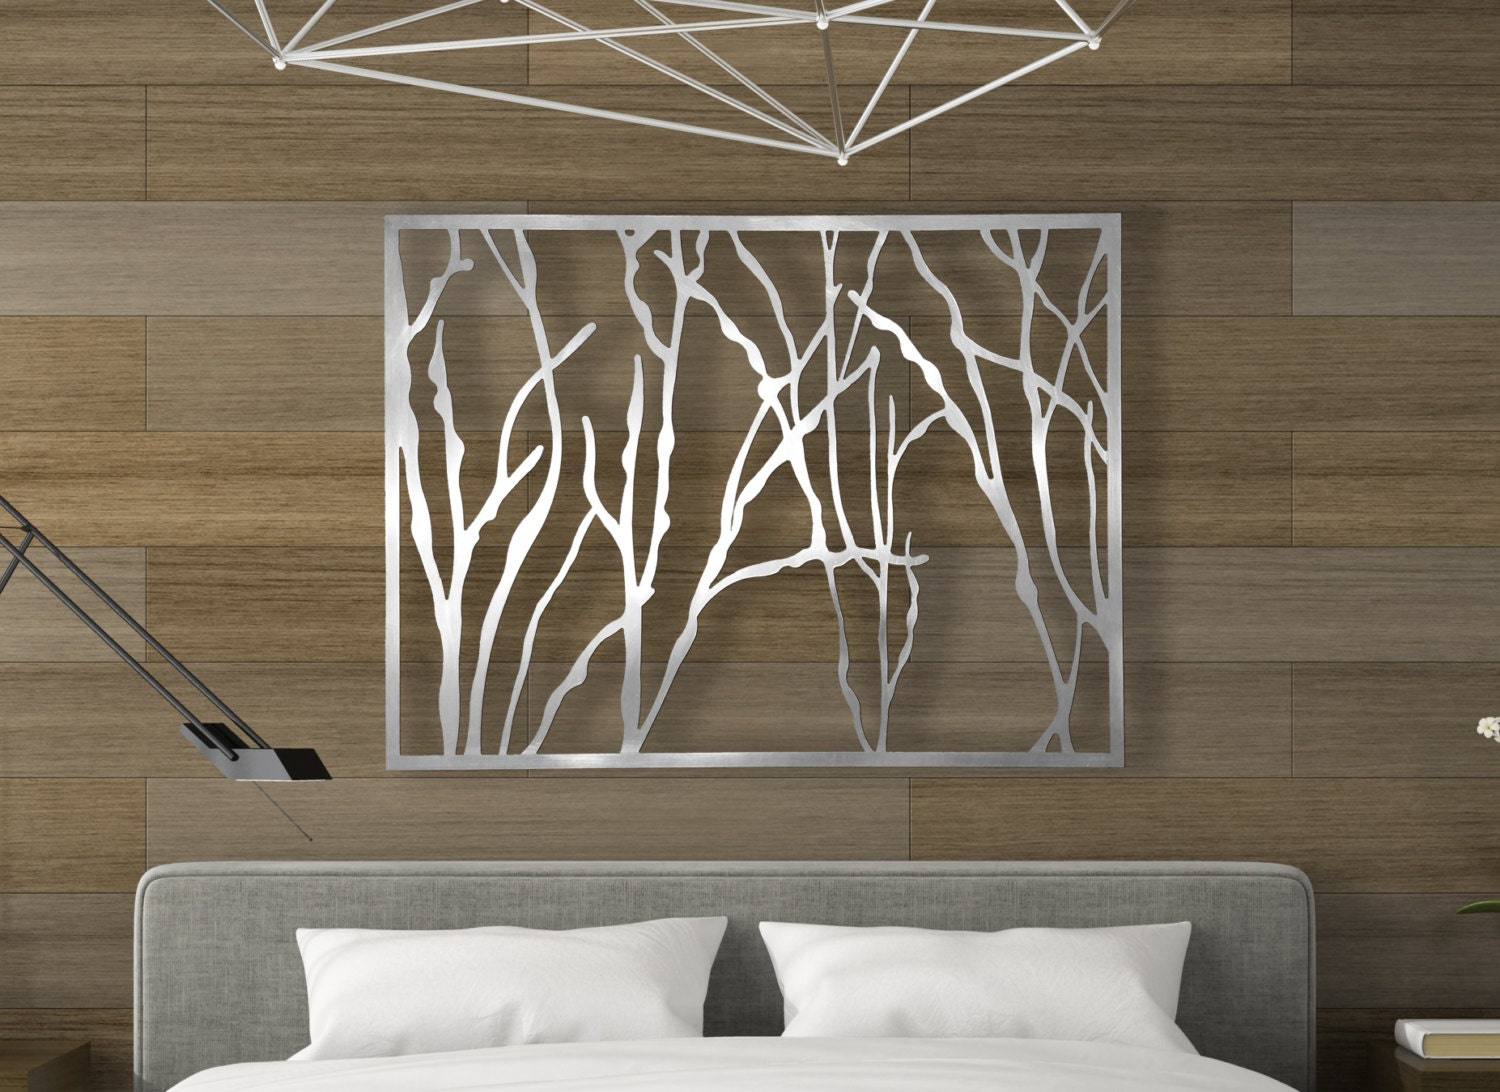 Laser cut metal decorative wall art panel sculpture for home for Unique wall art